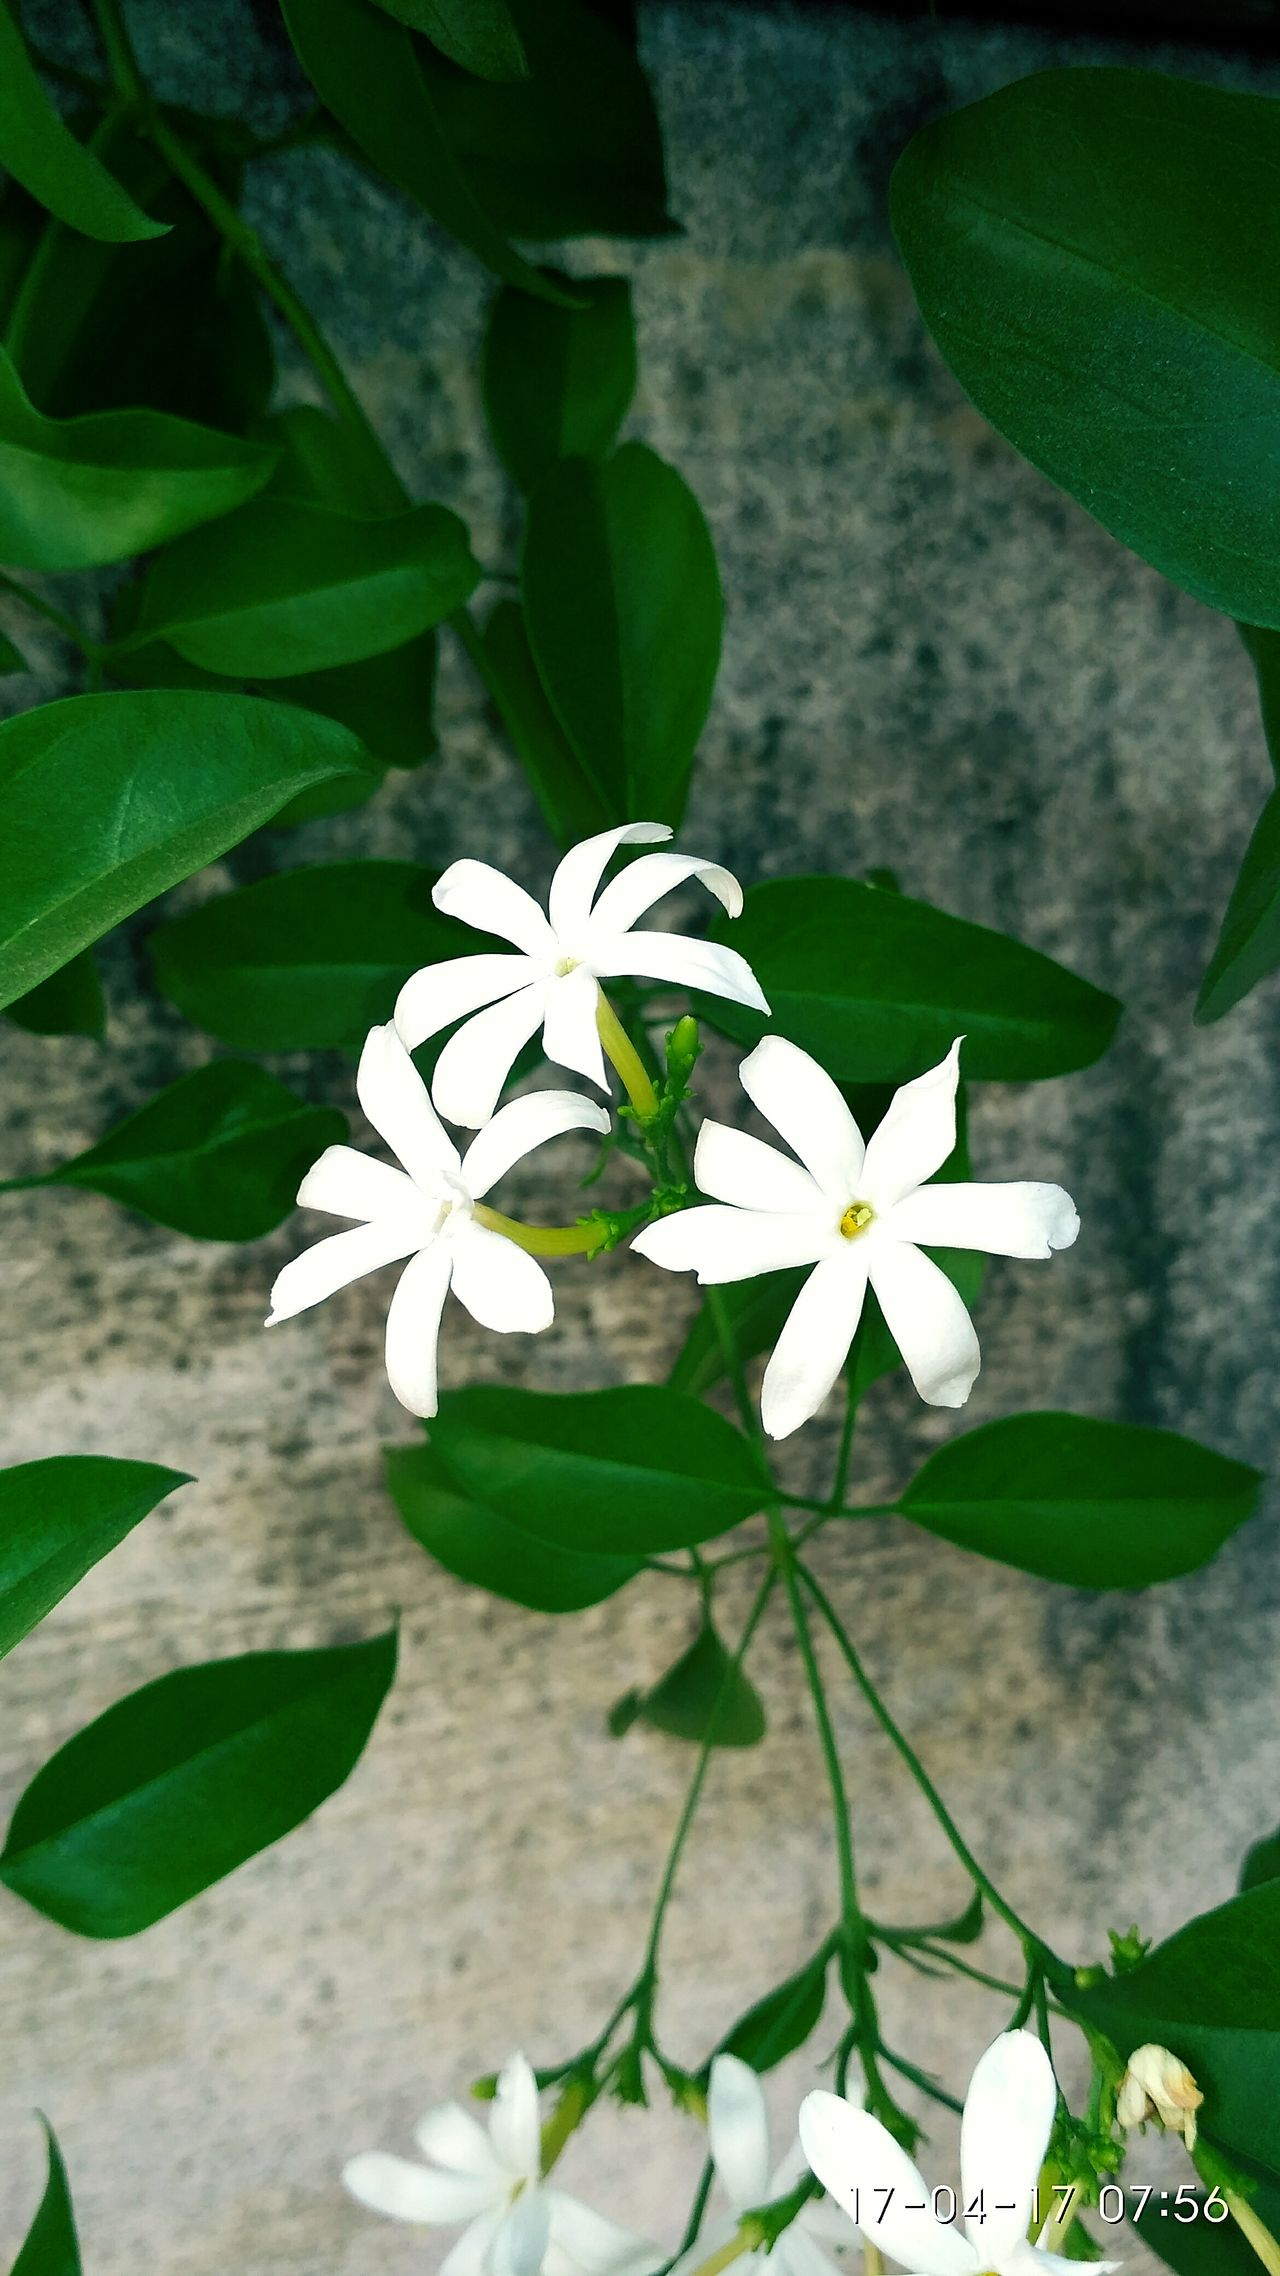 Flower White Color Plant Leaf Flower Head Nature Blossom Green Color Petal Close-up Fragility Freshness No People Outdoors Beauty In Nature Growth Day Scented PicOfMe EyeEm Diversity